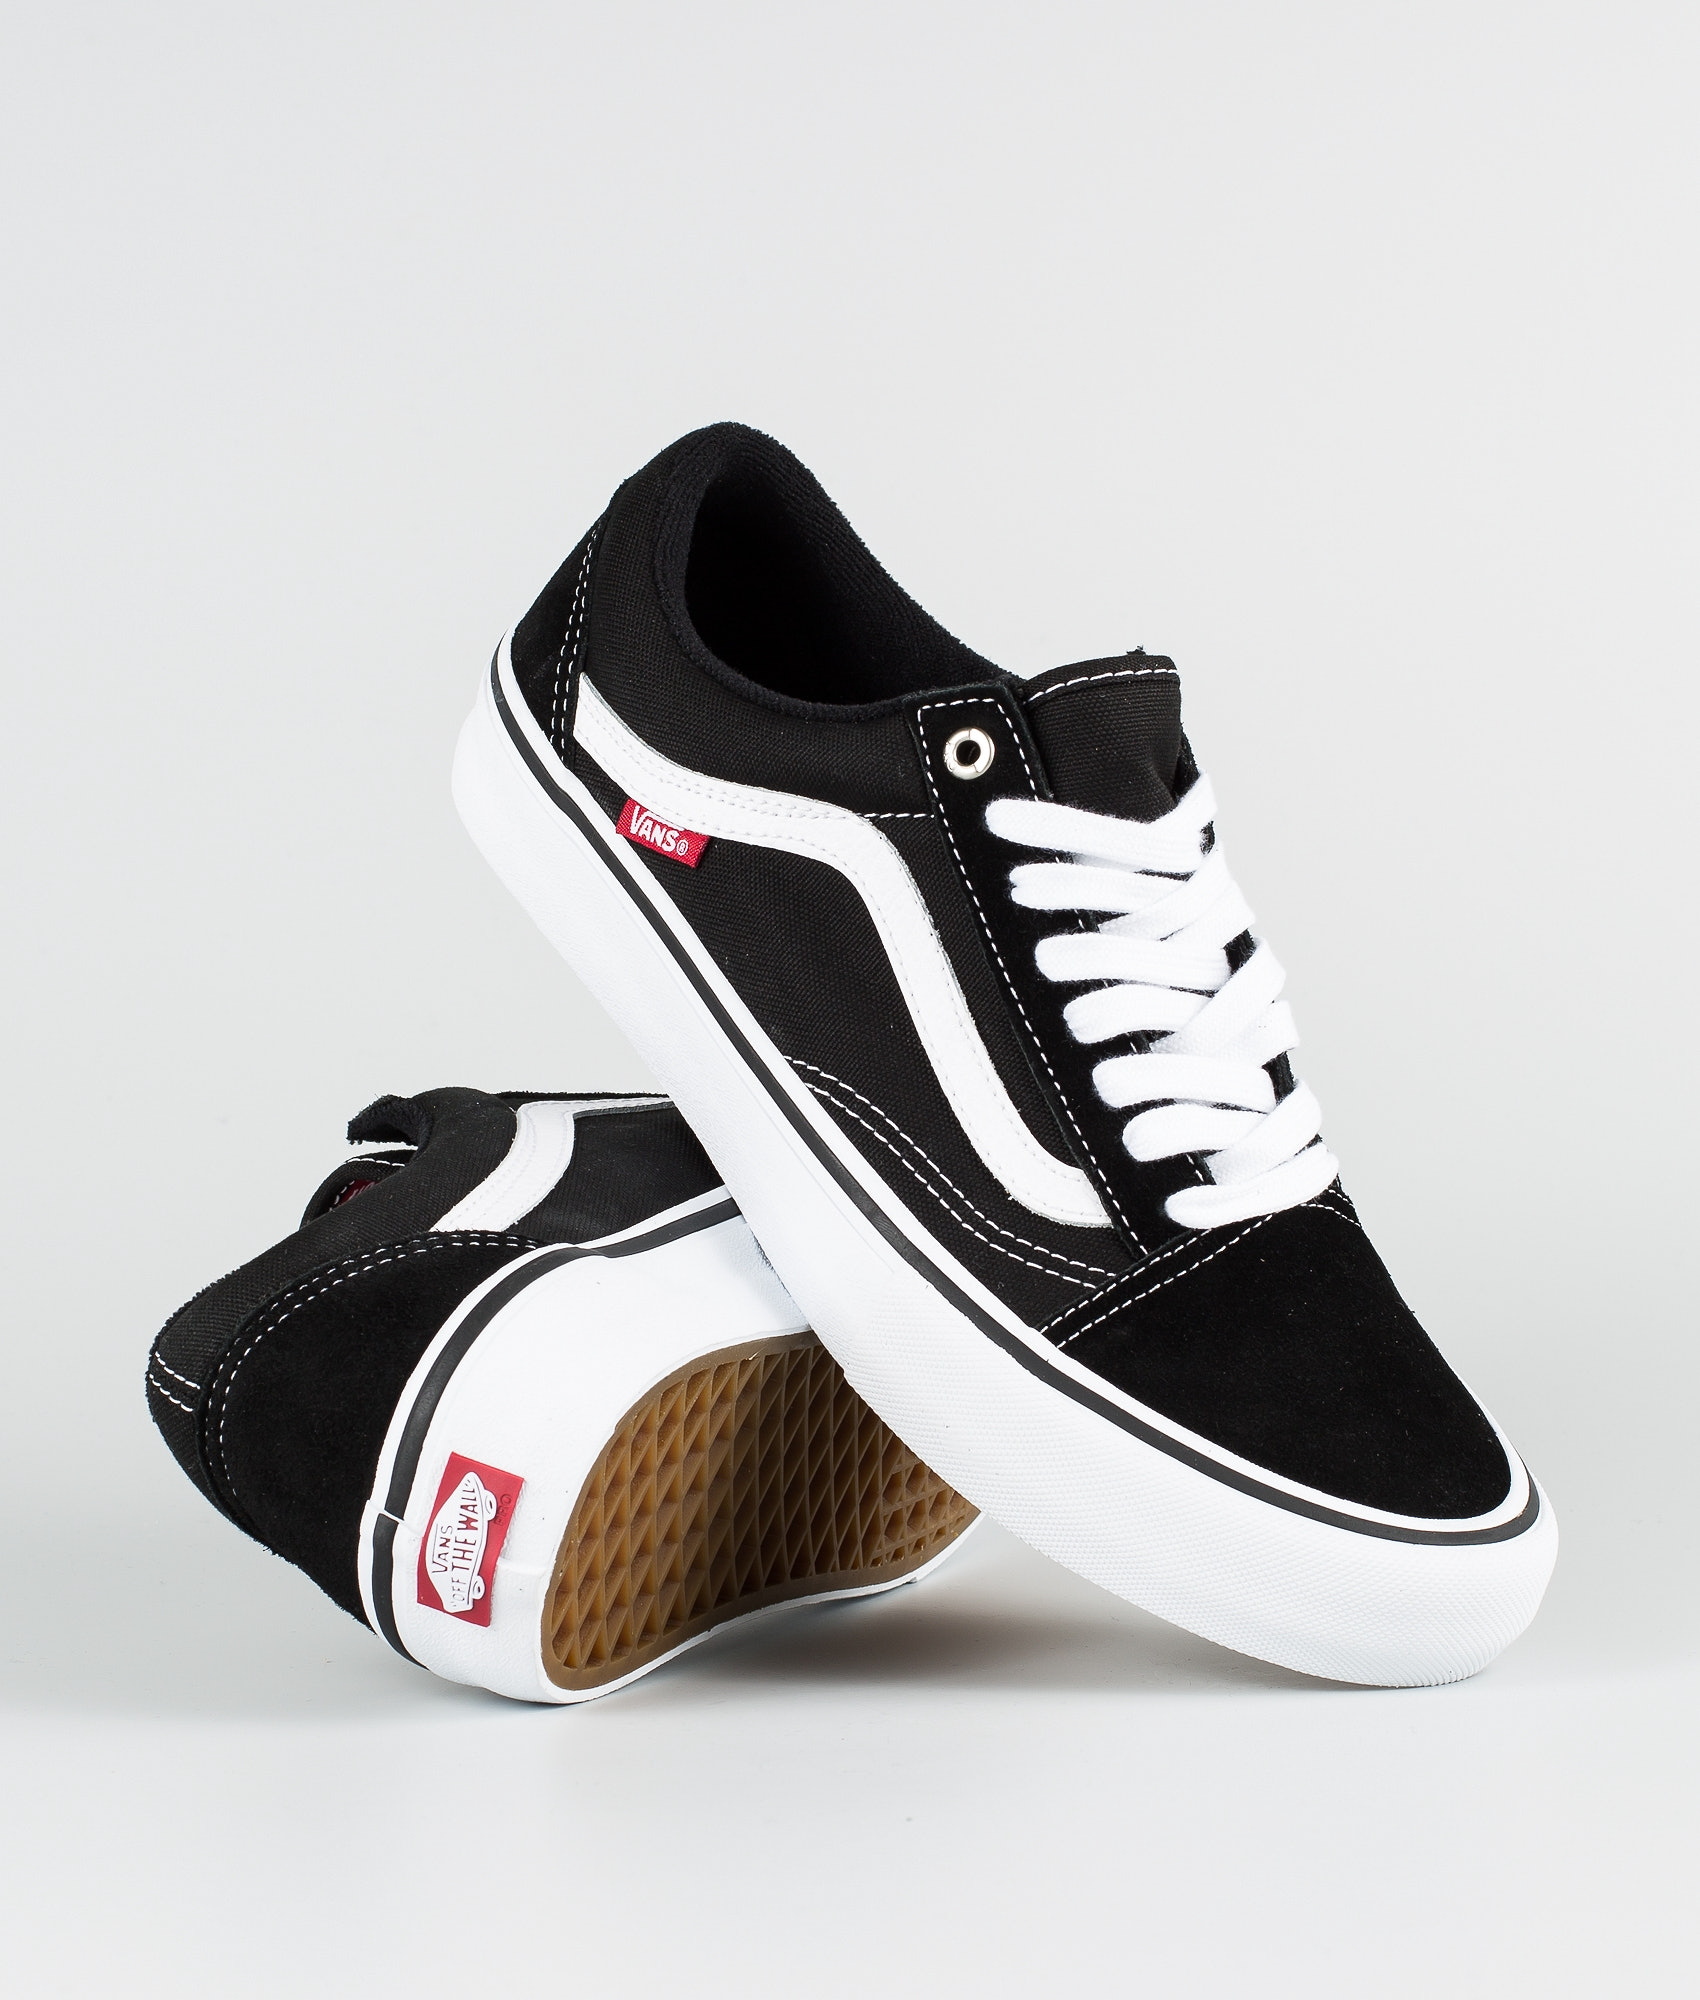 e4b3306138fc25 Vans Old Skool Pro Shoes Black White - Ridestore.com